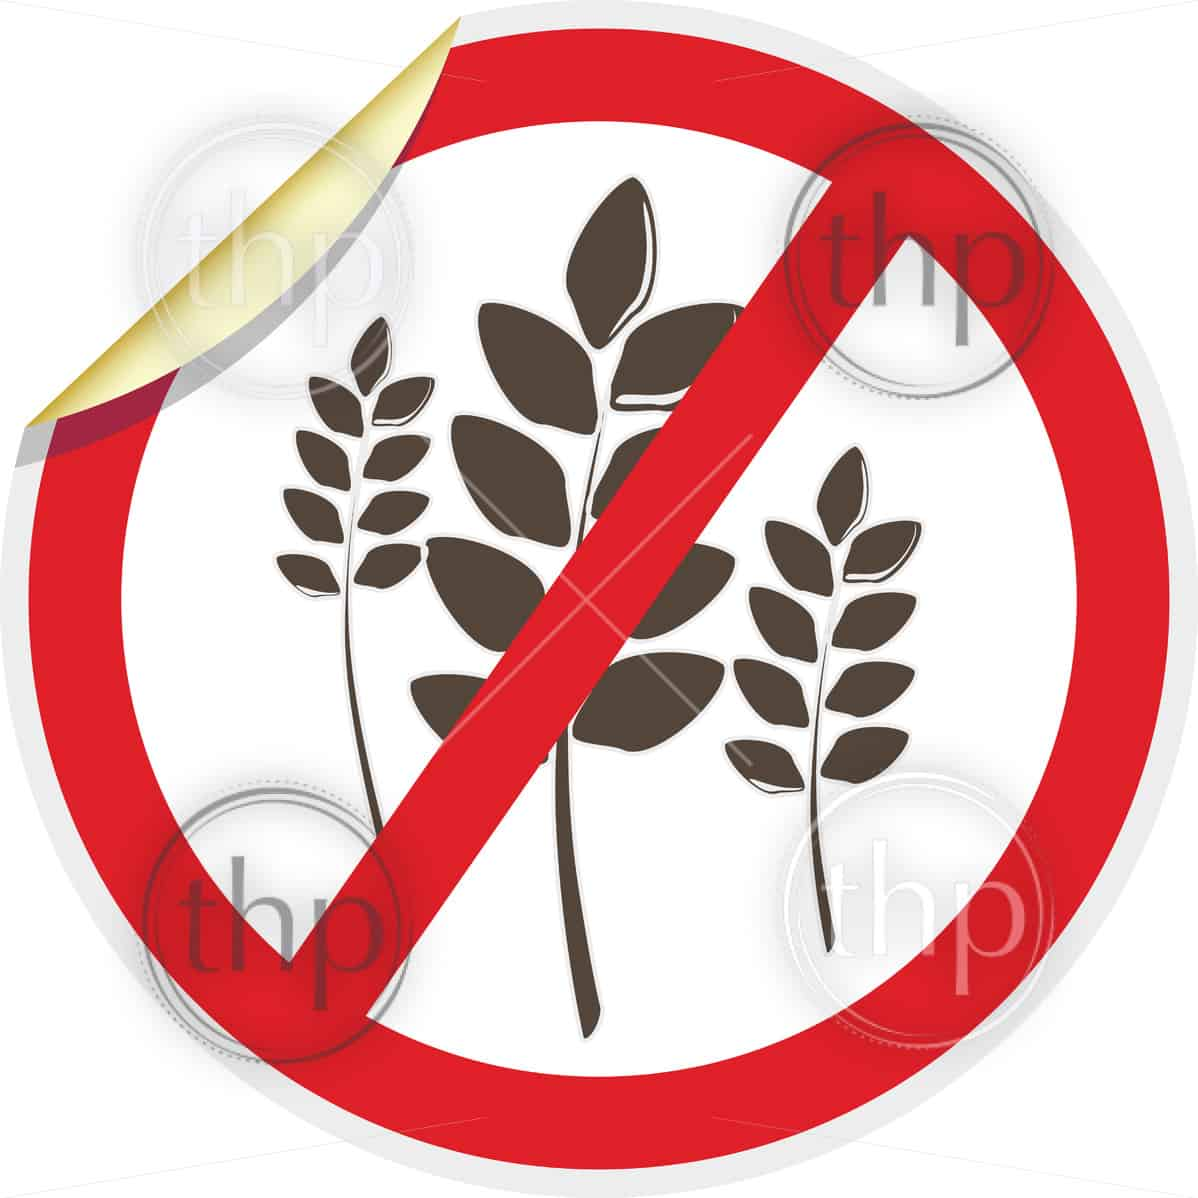 Wheat free icon in 3D style for food allergy concept